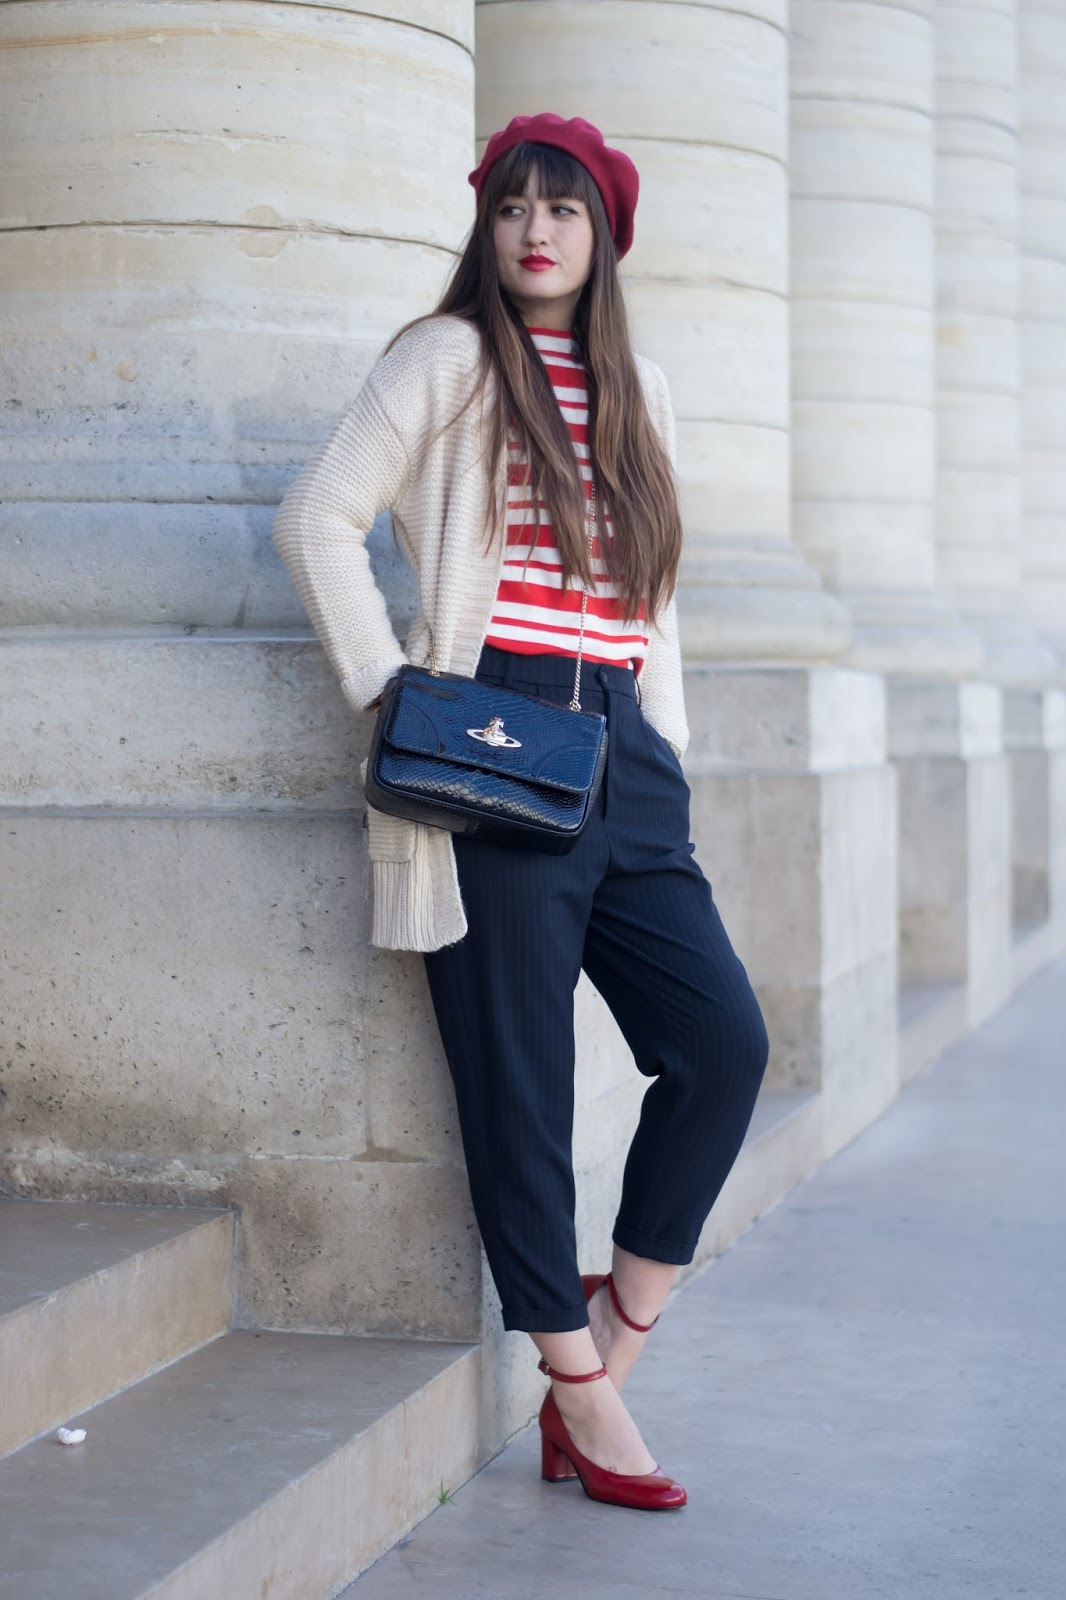 parisian fashion blogger, look, style, meetmeinparee, blog mode paris, street style, cute style